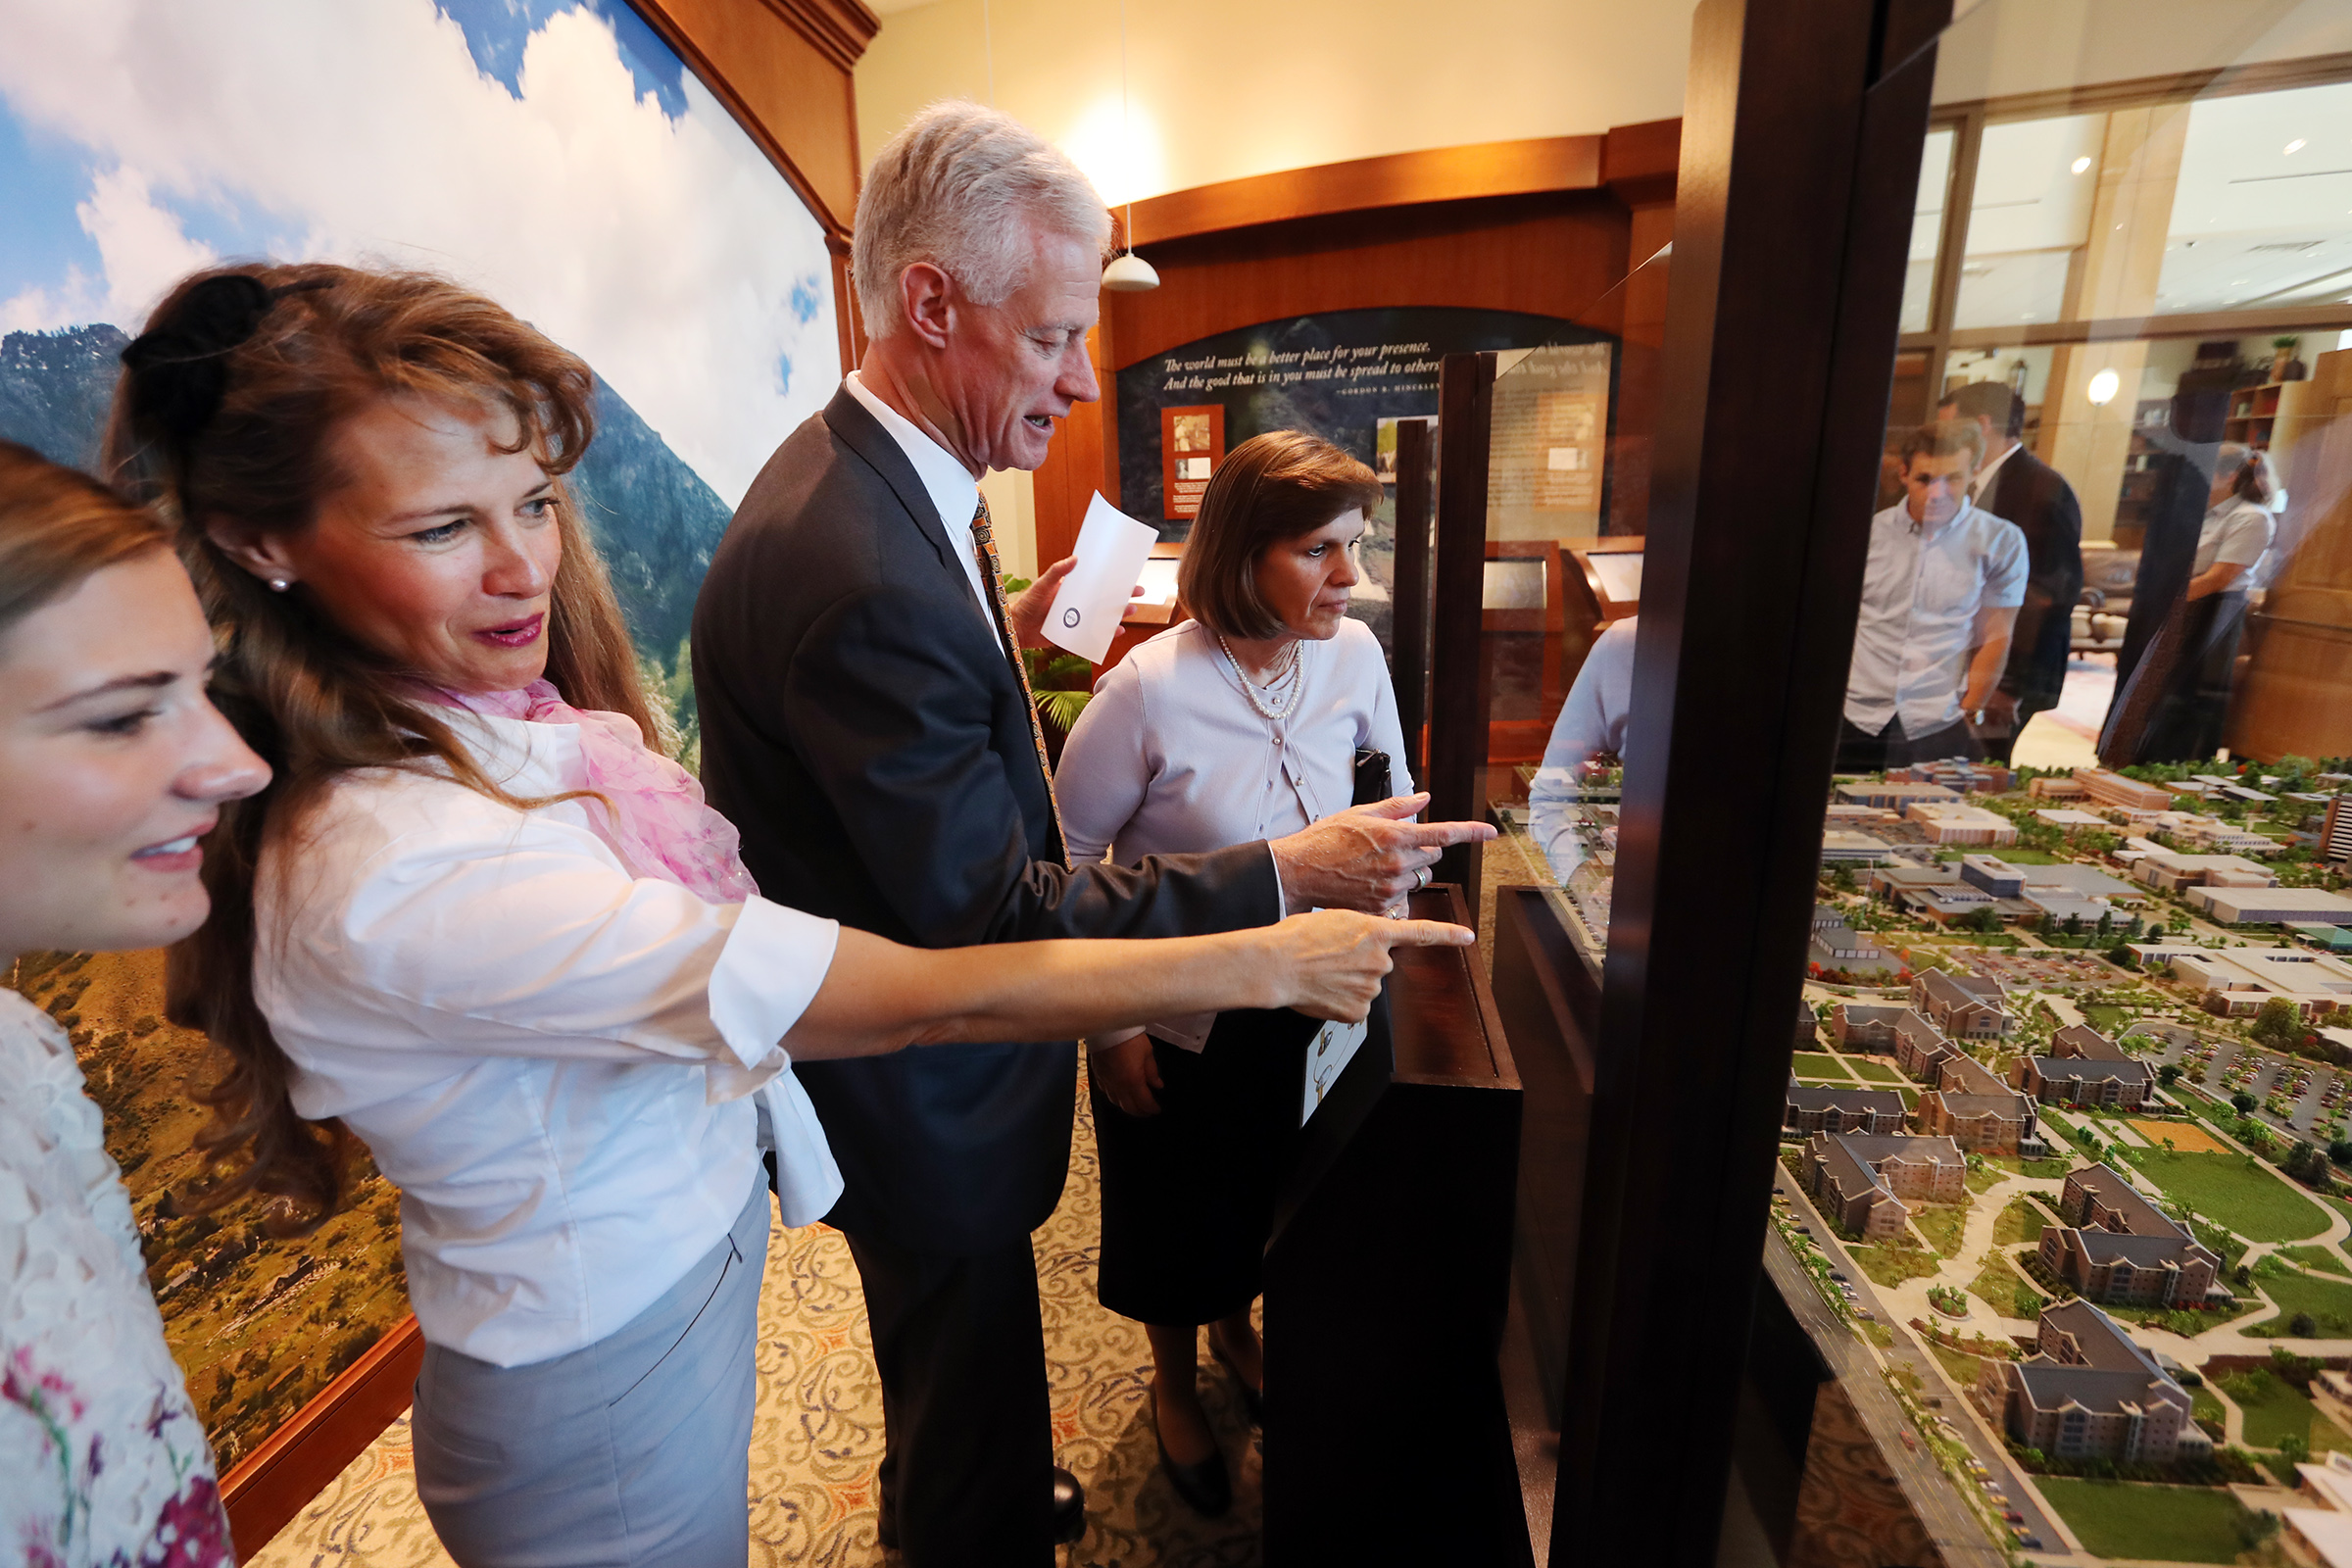 Mary Sorensen, her mother Stephanie Sorensen, President Kevin J Worthen and his wife Peggy look at the Easter egg placed on the map as BYU unveils a highly-detailed campus diorama on Tuesday, July 2, 2019.